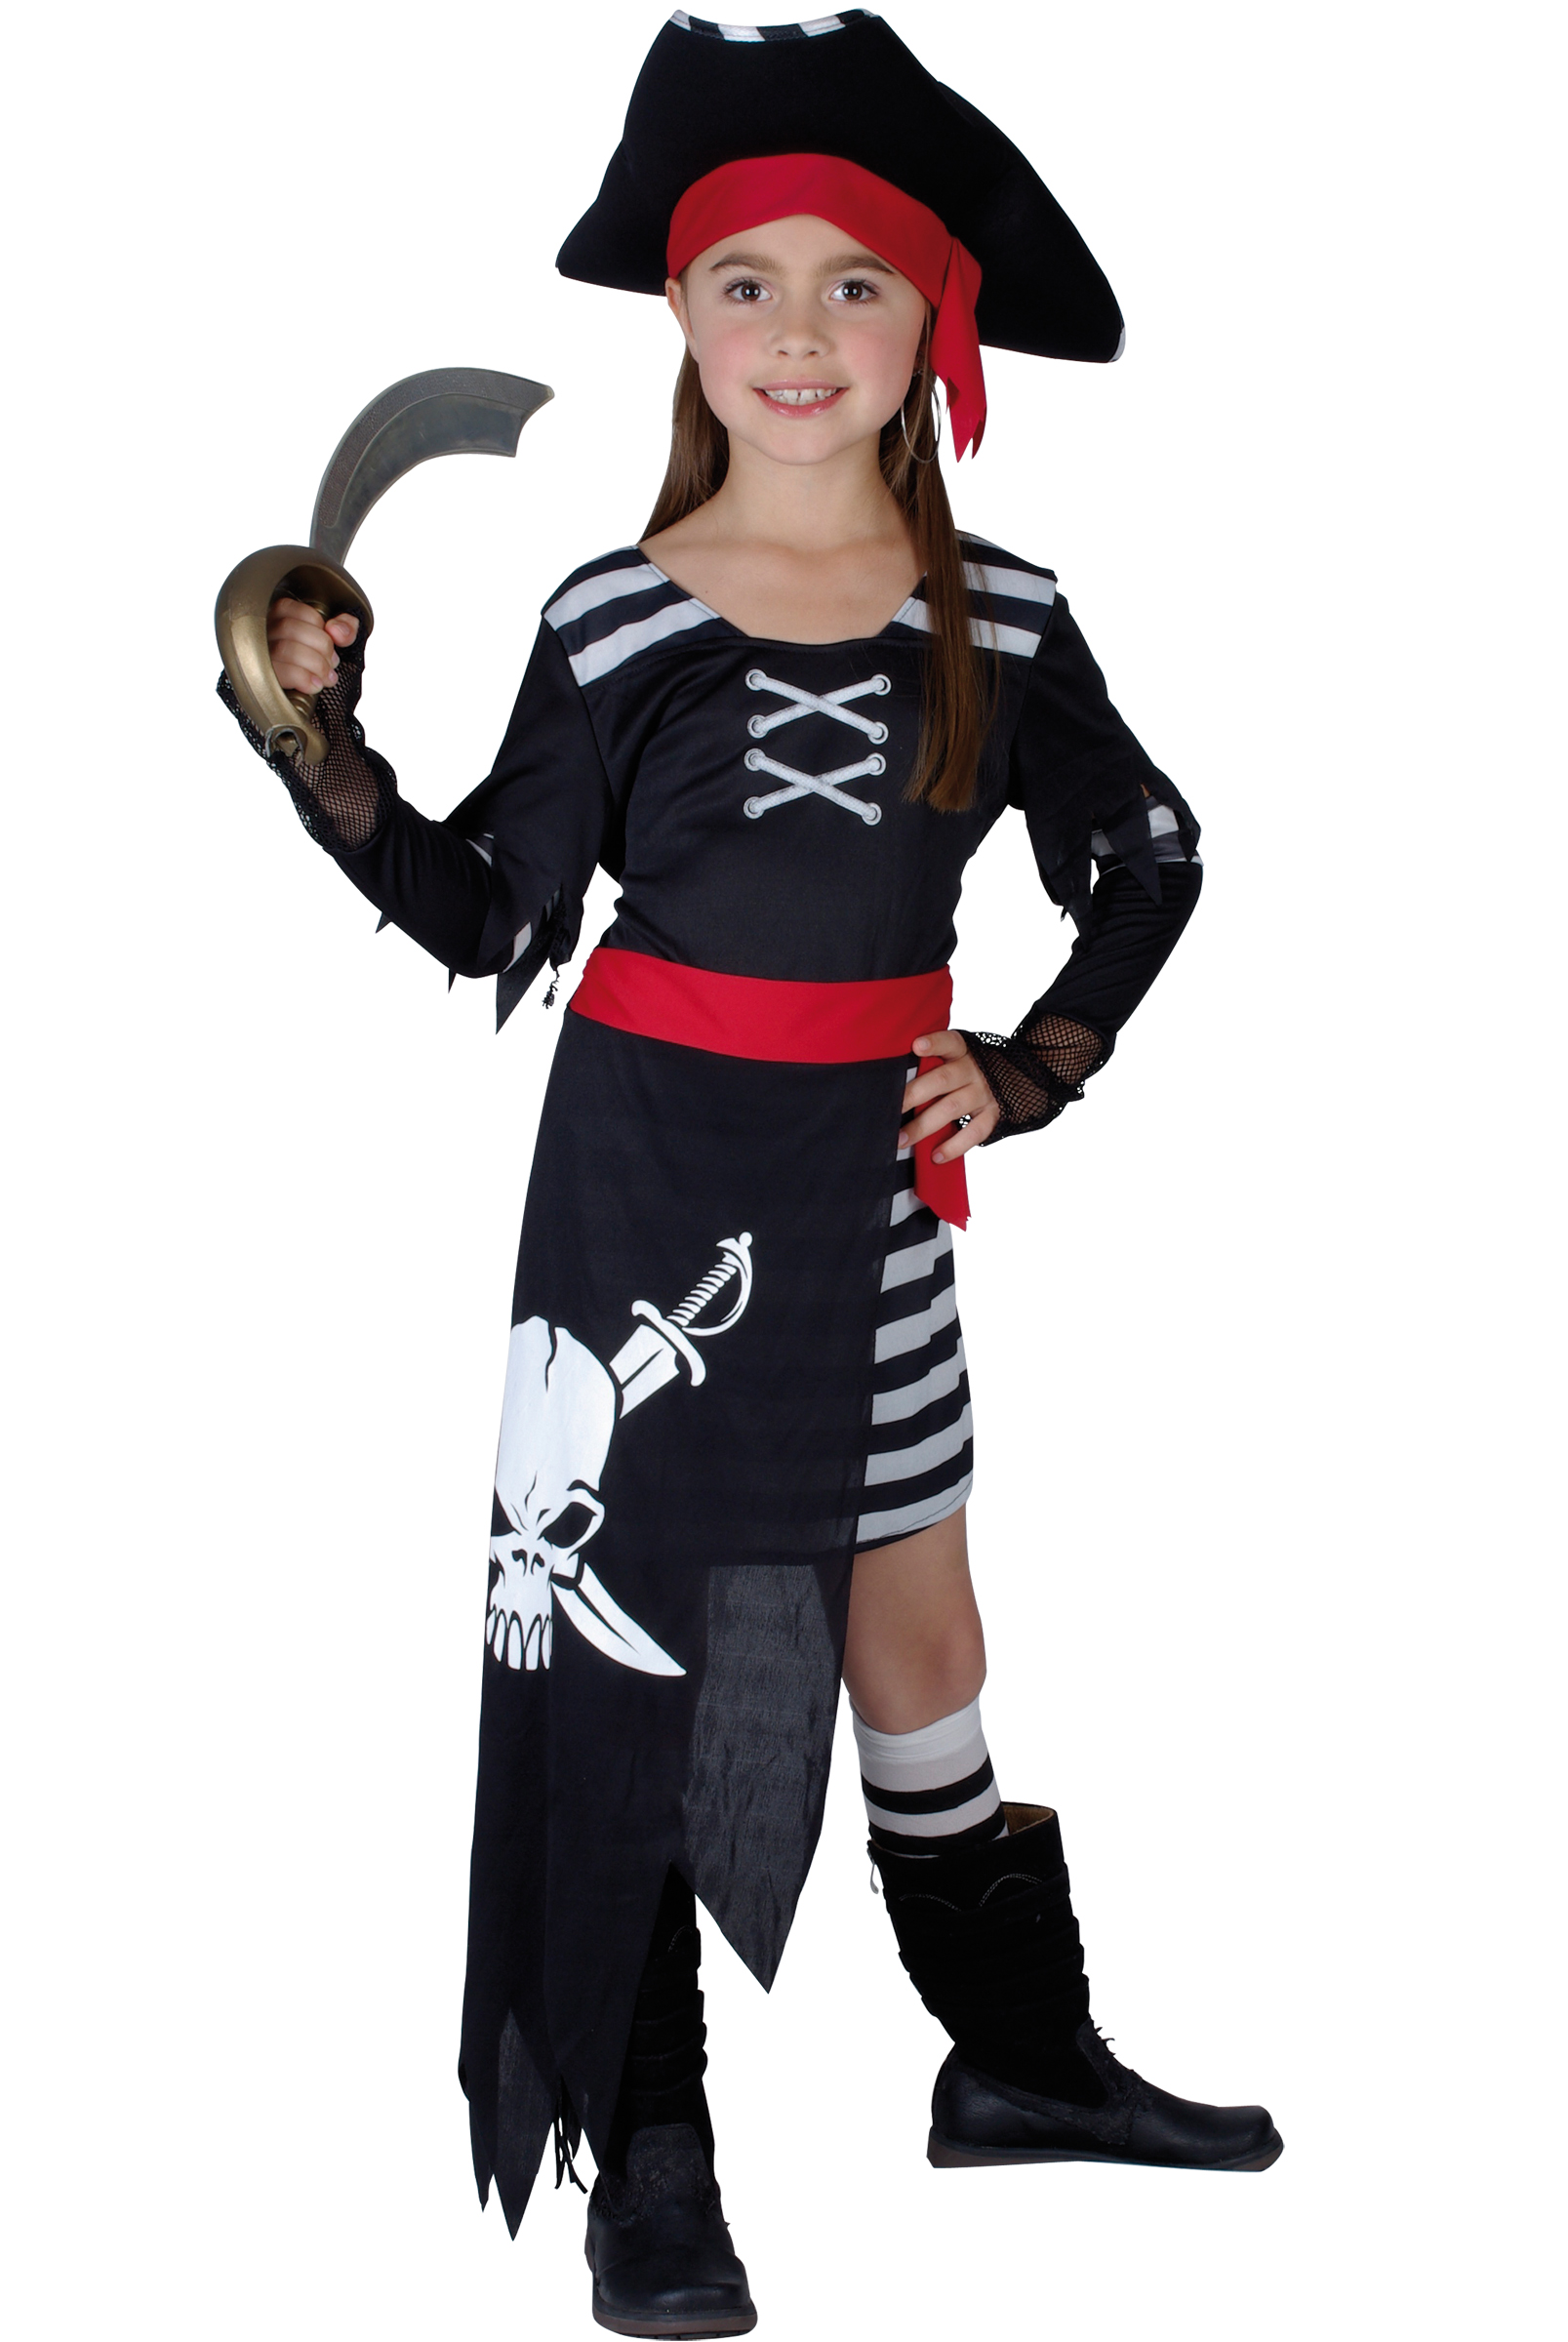 d guisement pirate fille d guisement pirate enfant pas cher costume carnaval. Black Bedroom Furniture Sets. Home Design Ideas